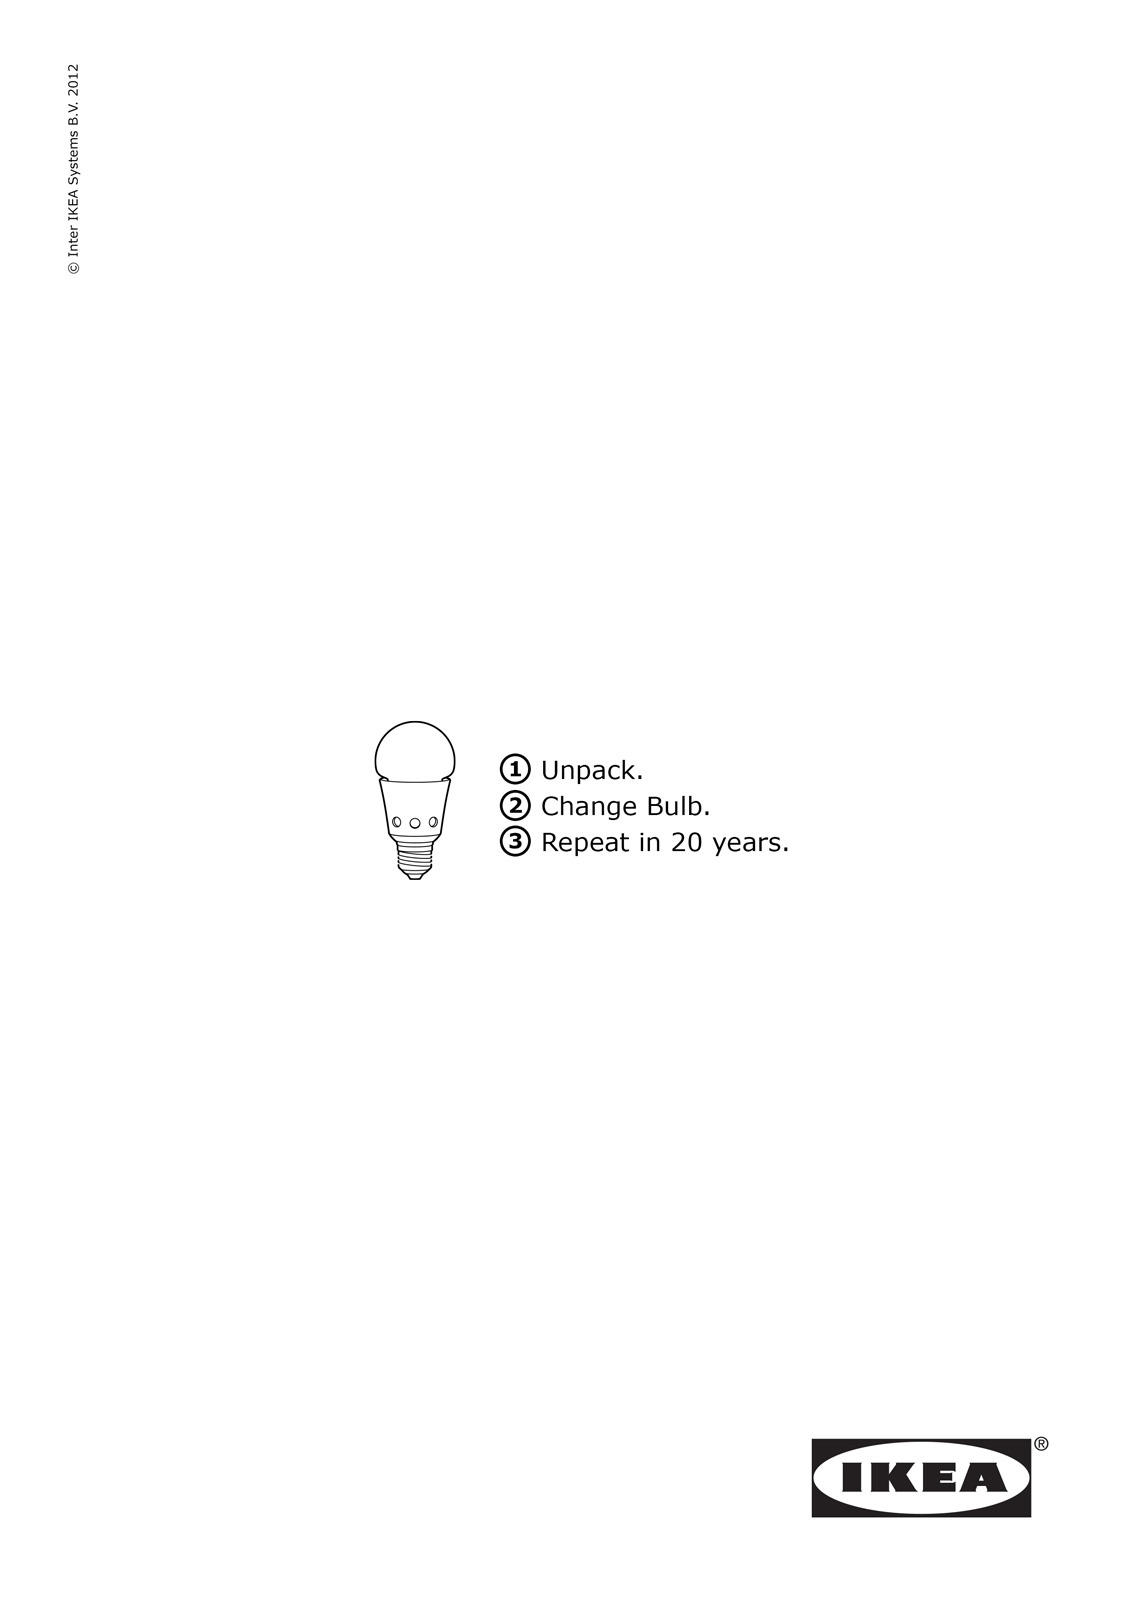 yoannmichaux:  1. Unpack2. Change Bulb3. Repeat in 20 Years. Ikea Ad